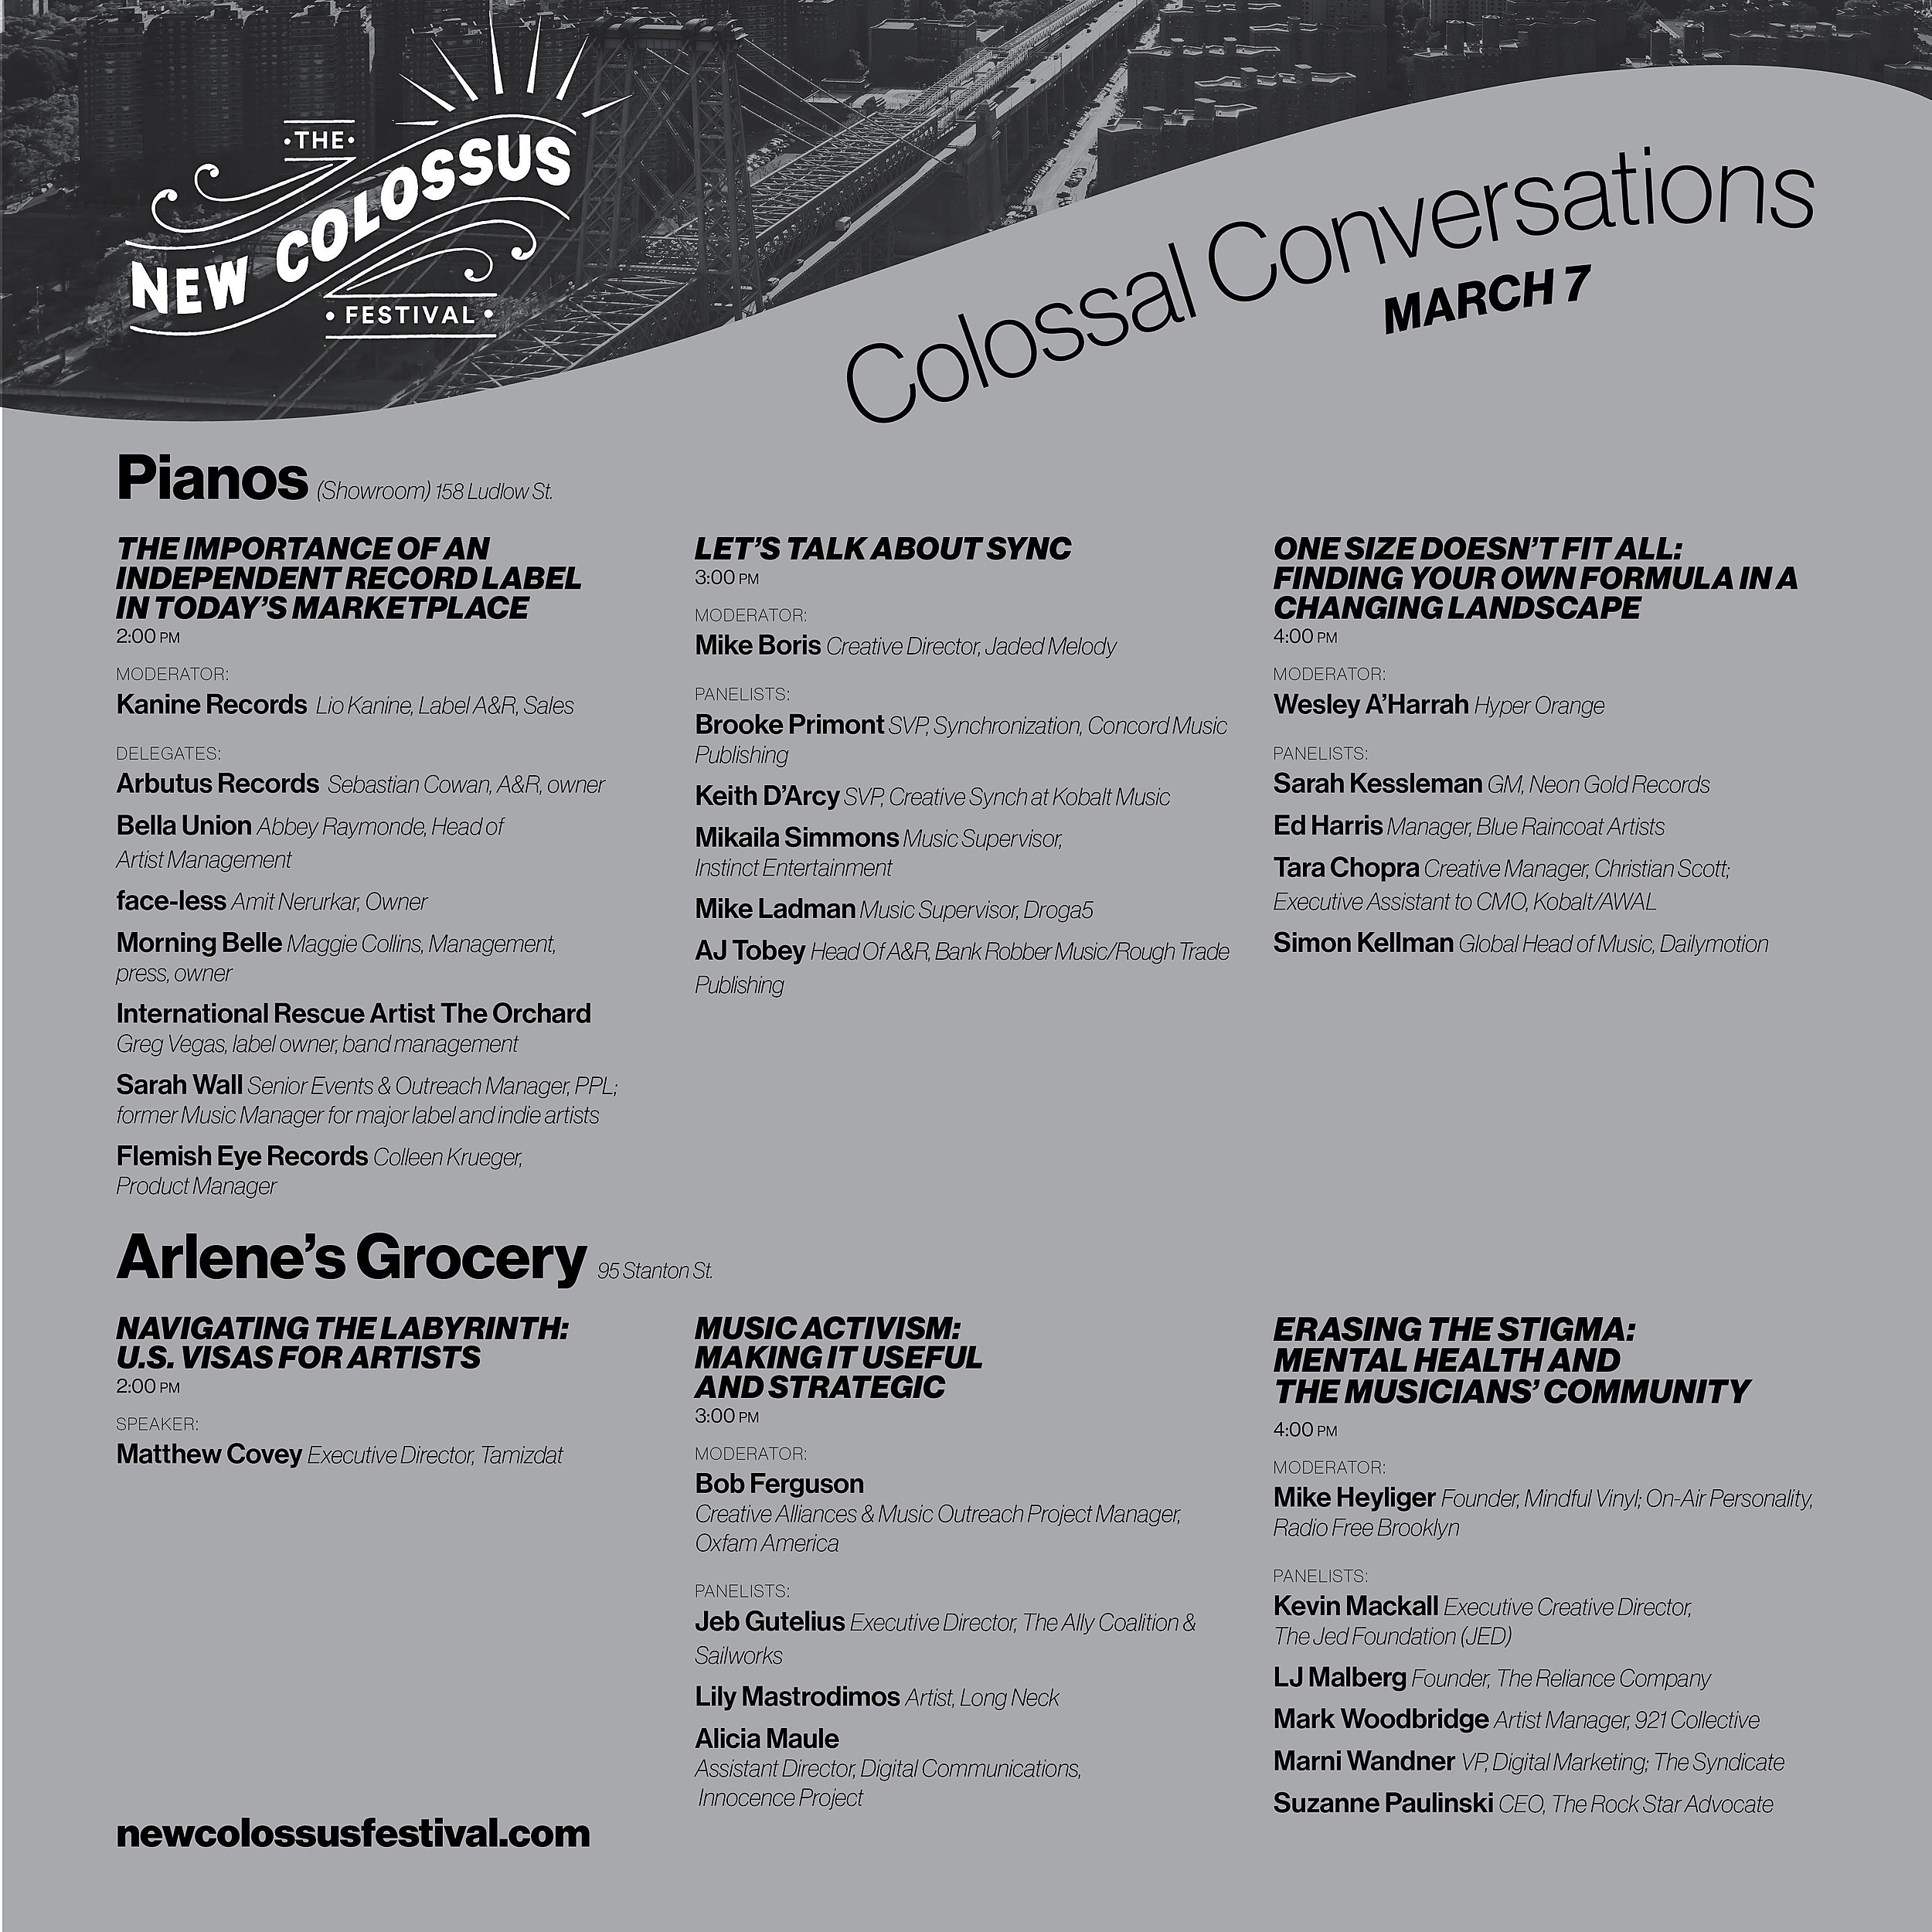 new-colossus-panel-discussions